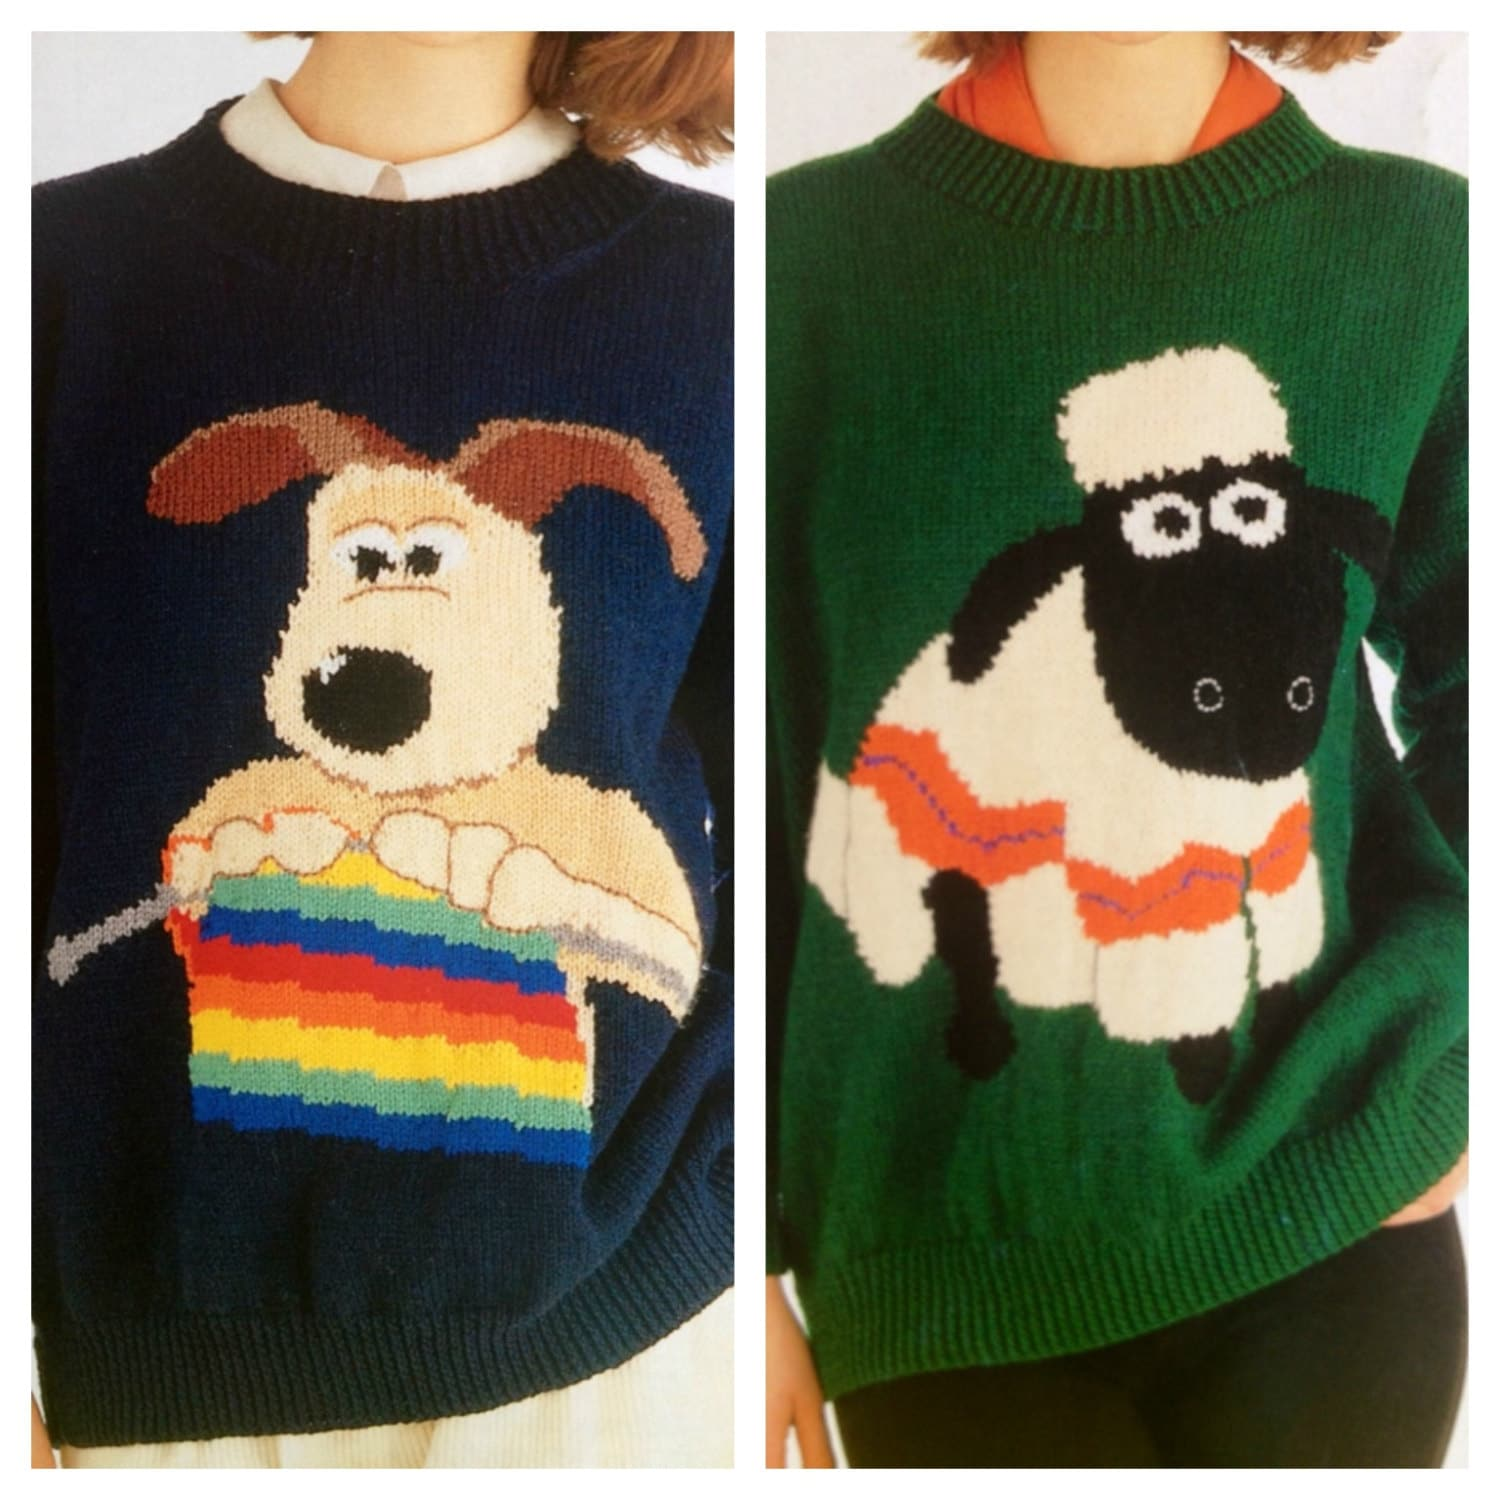 Wallace and gromit and shaun the sheep knitting patterns wallace and gromit and shaun the sheep knitting patterns sweaters jumpers for adults men and women knitting theme bankloansurffo Gallery